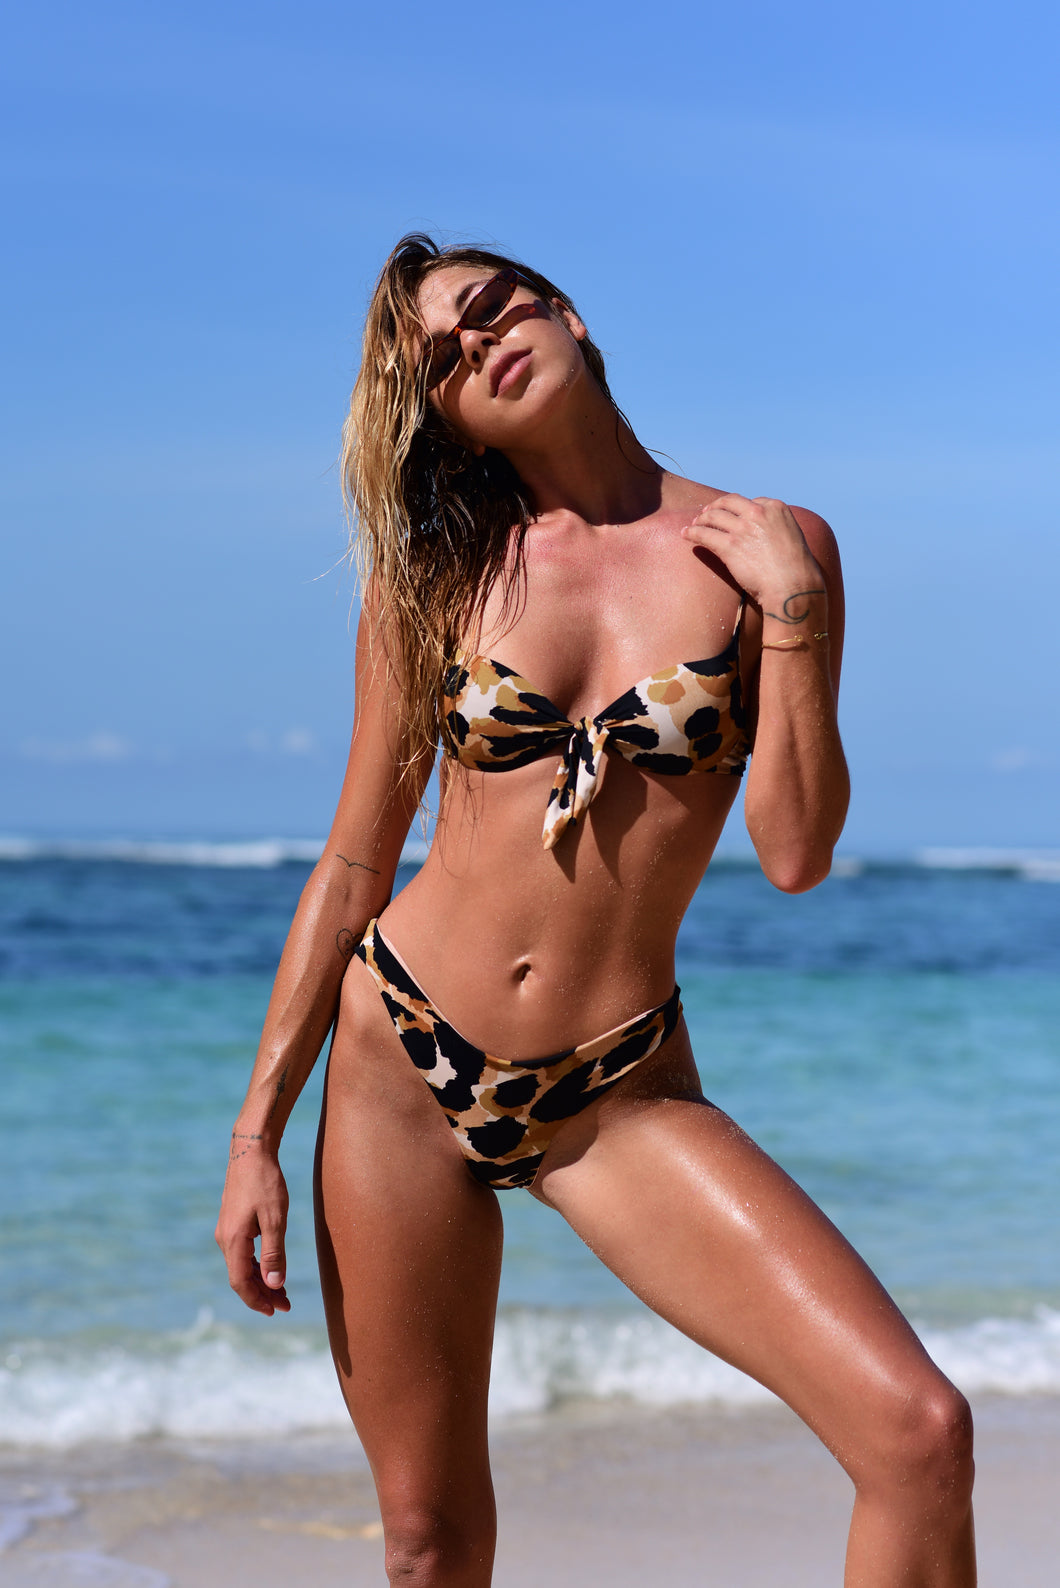 model wears push-up jaguar bikini top